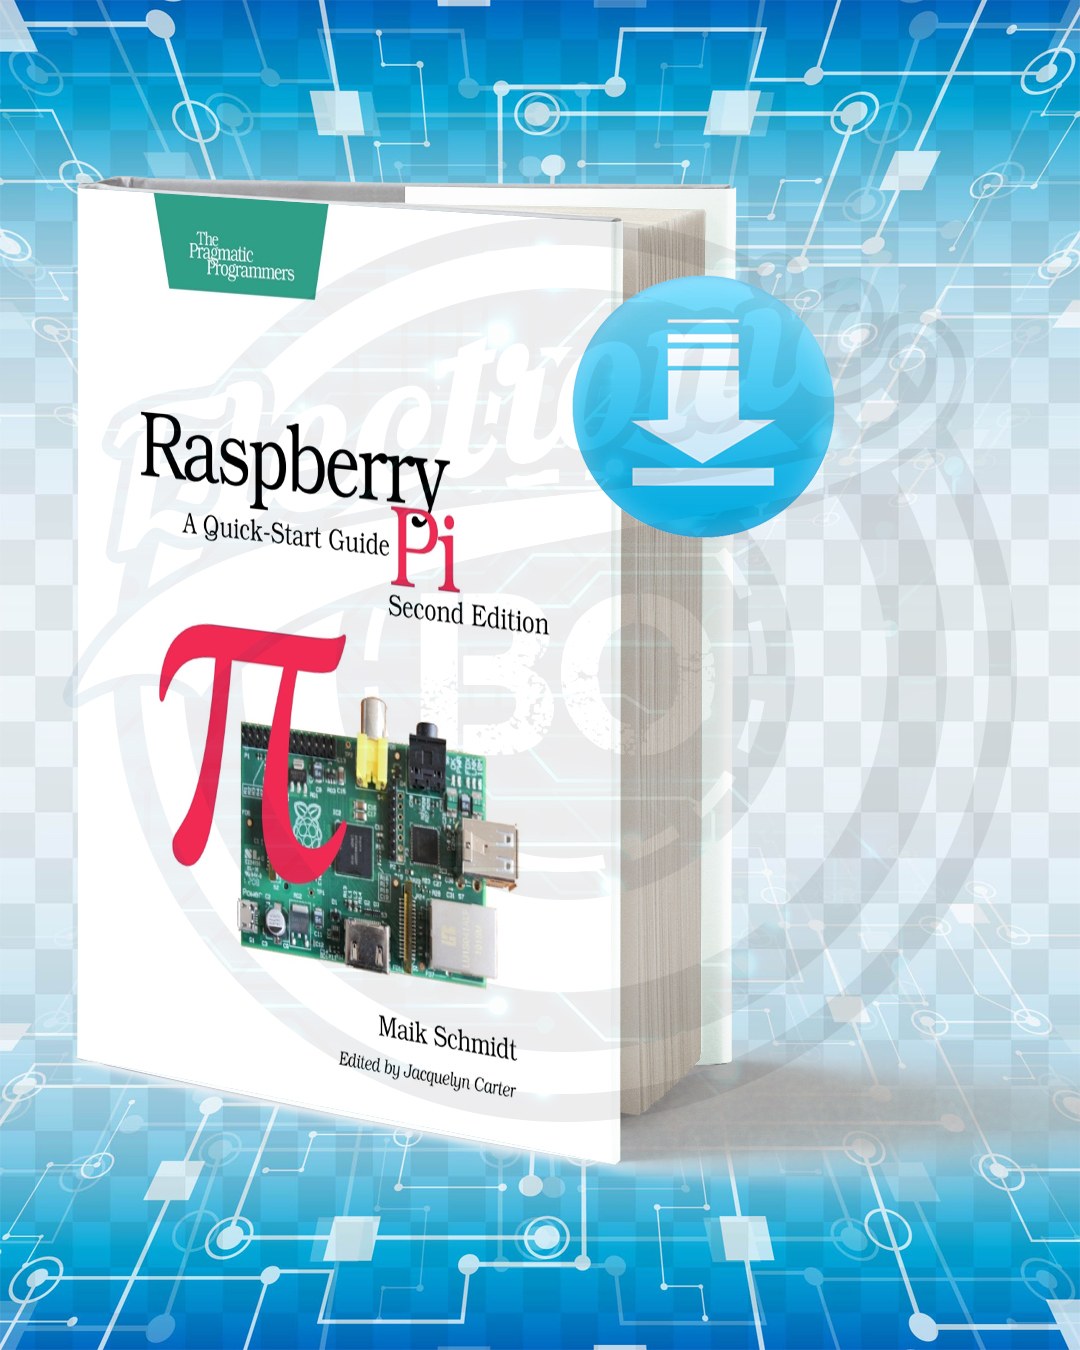 Free Book Raspberry Pi pdf.